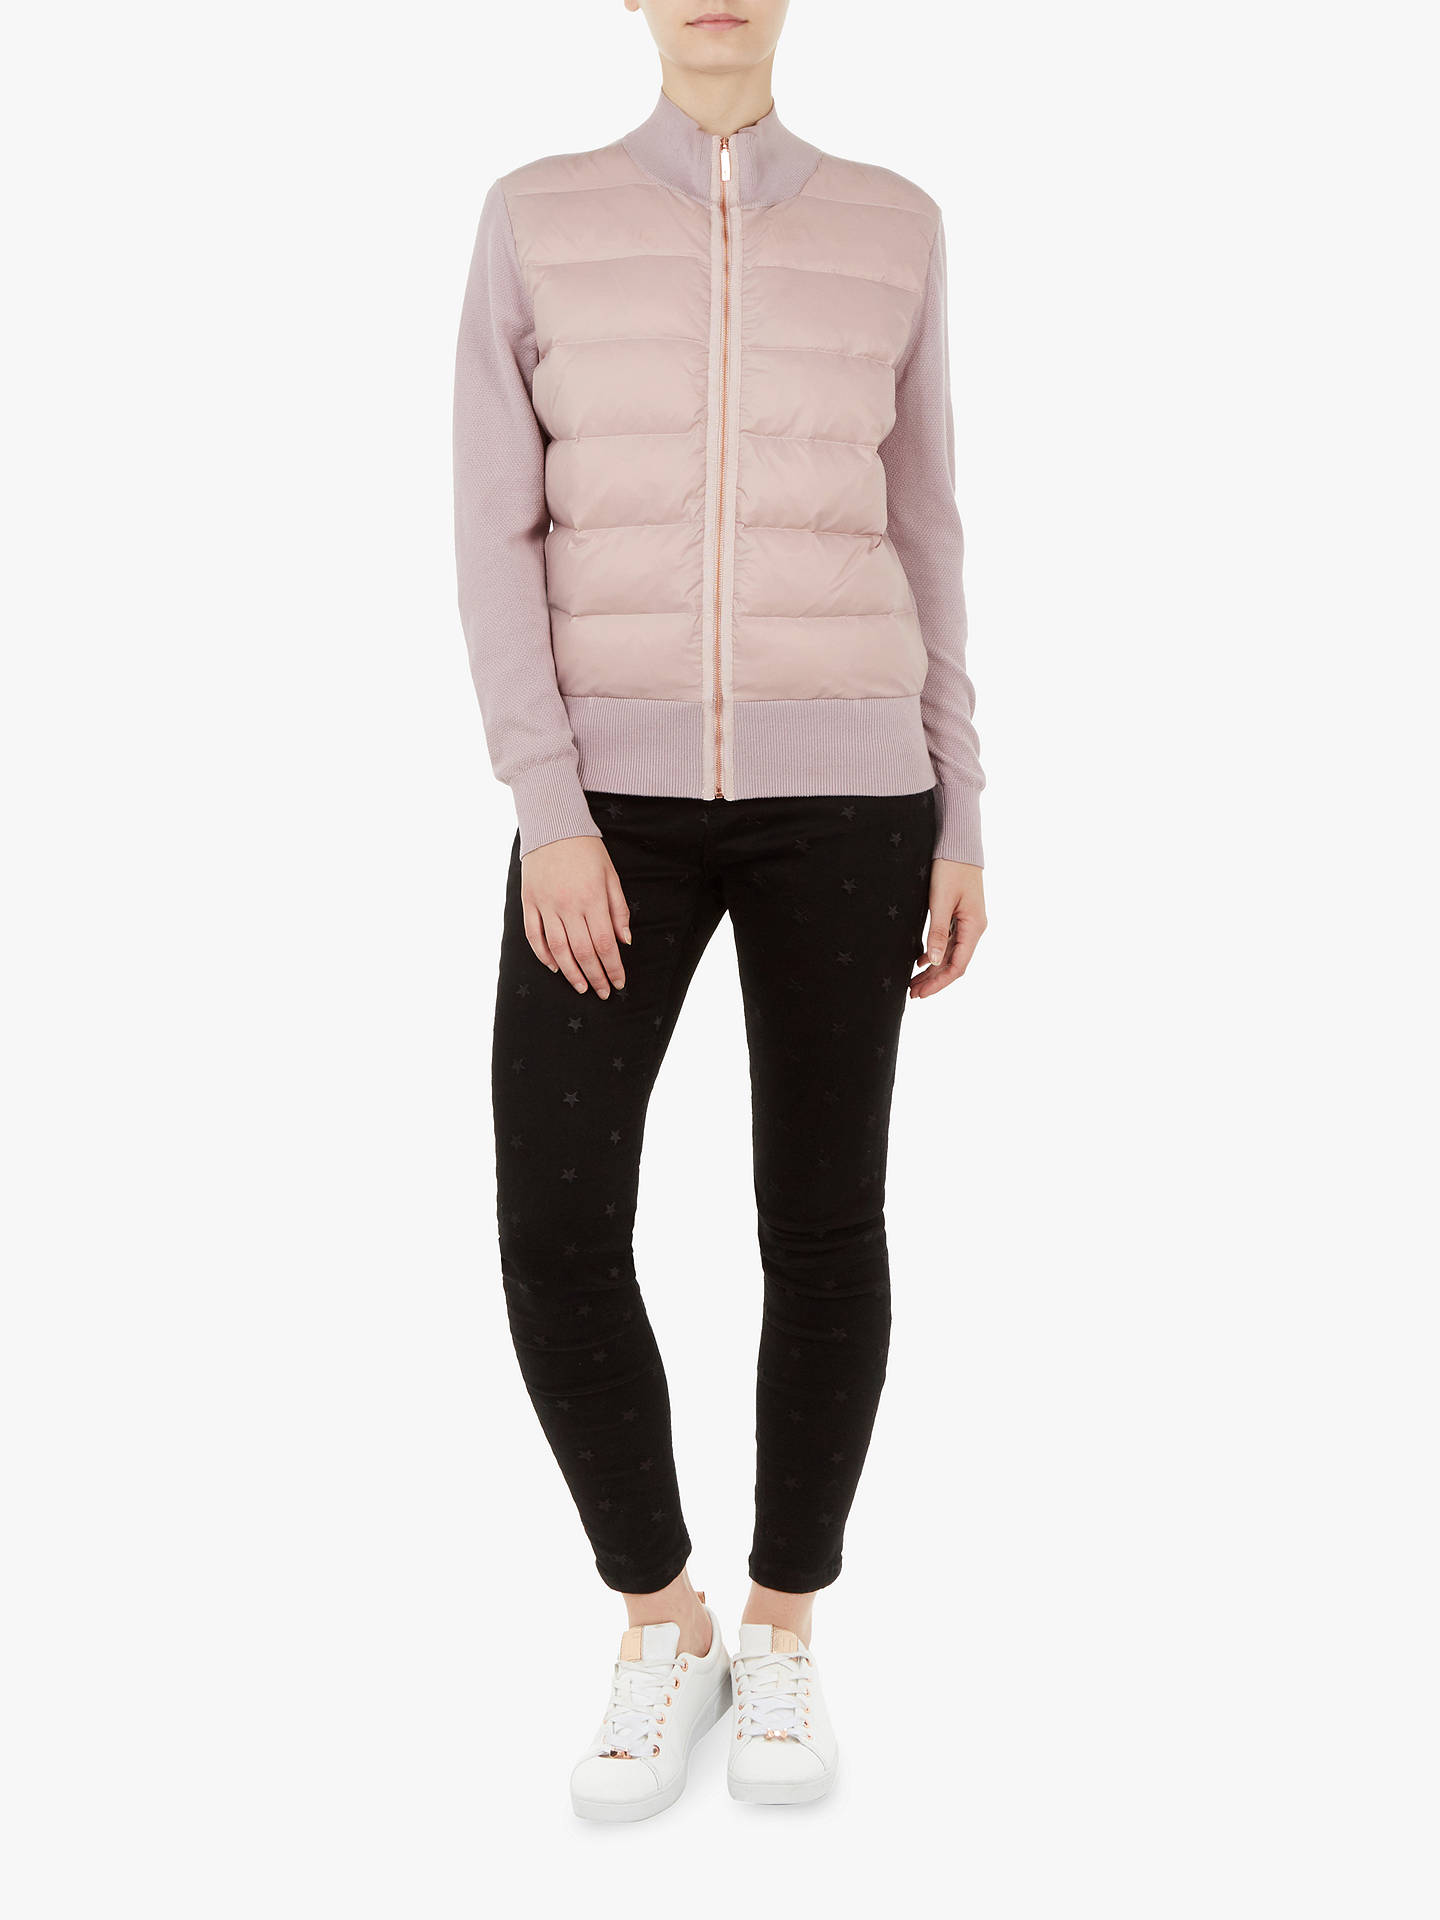 BuyTed Baker Xinta Knit Jacket, Purple Lilac, L Online at johnlewis.com